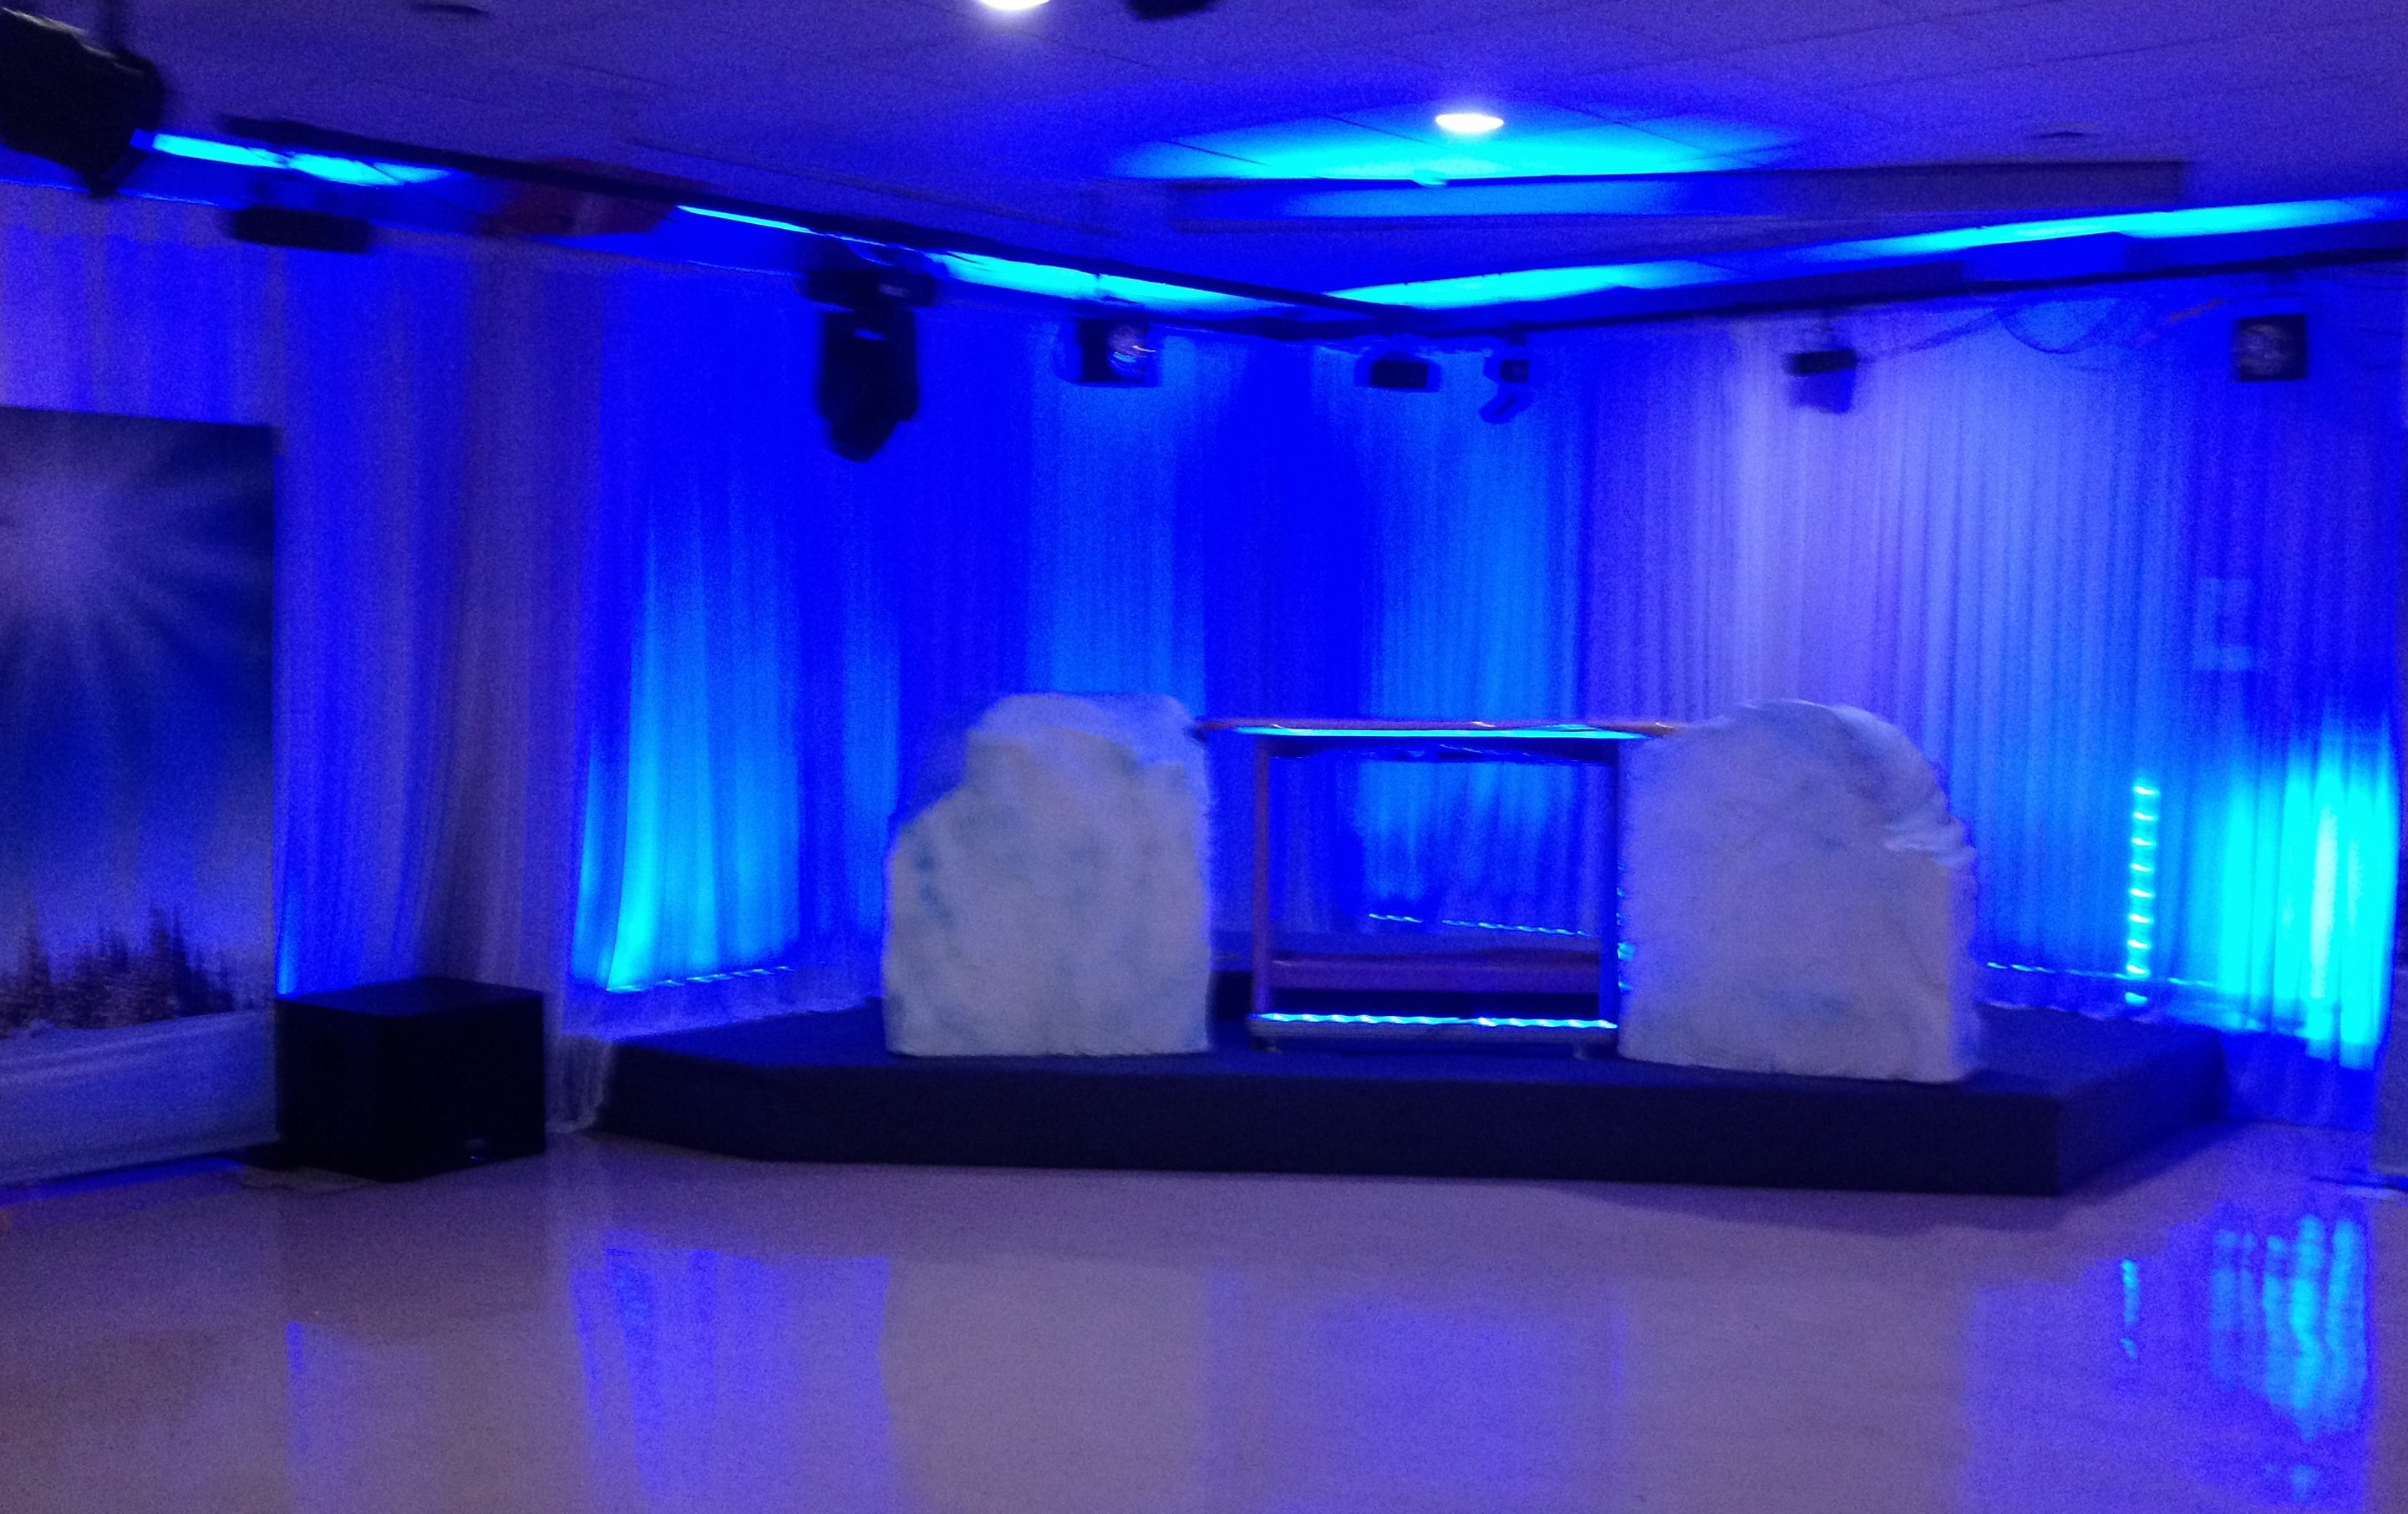 Blue wall wash lighting at Auckland event.